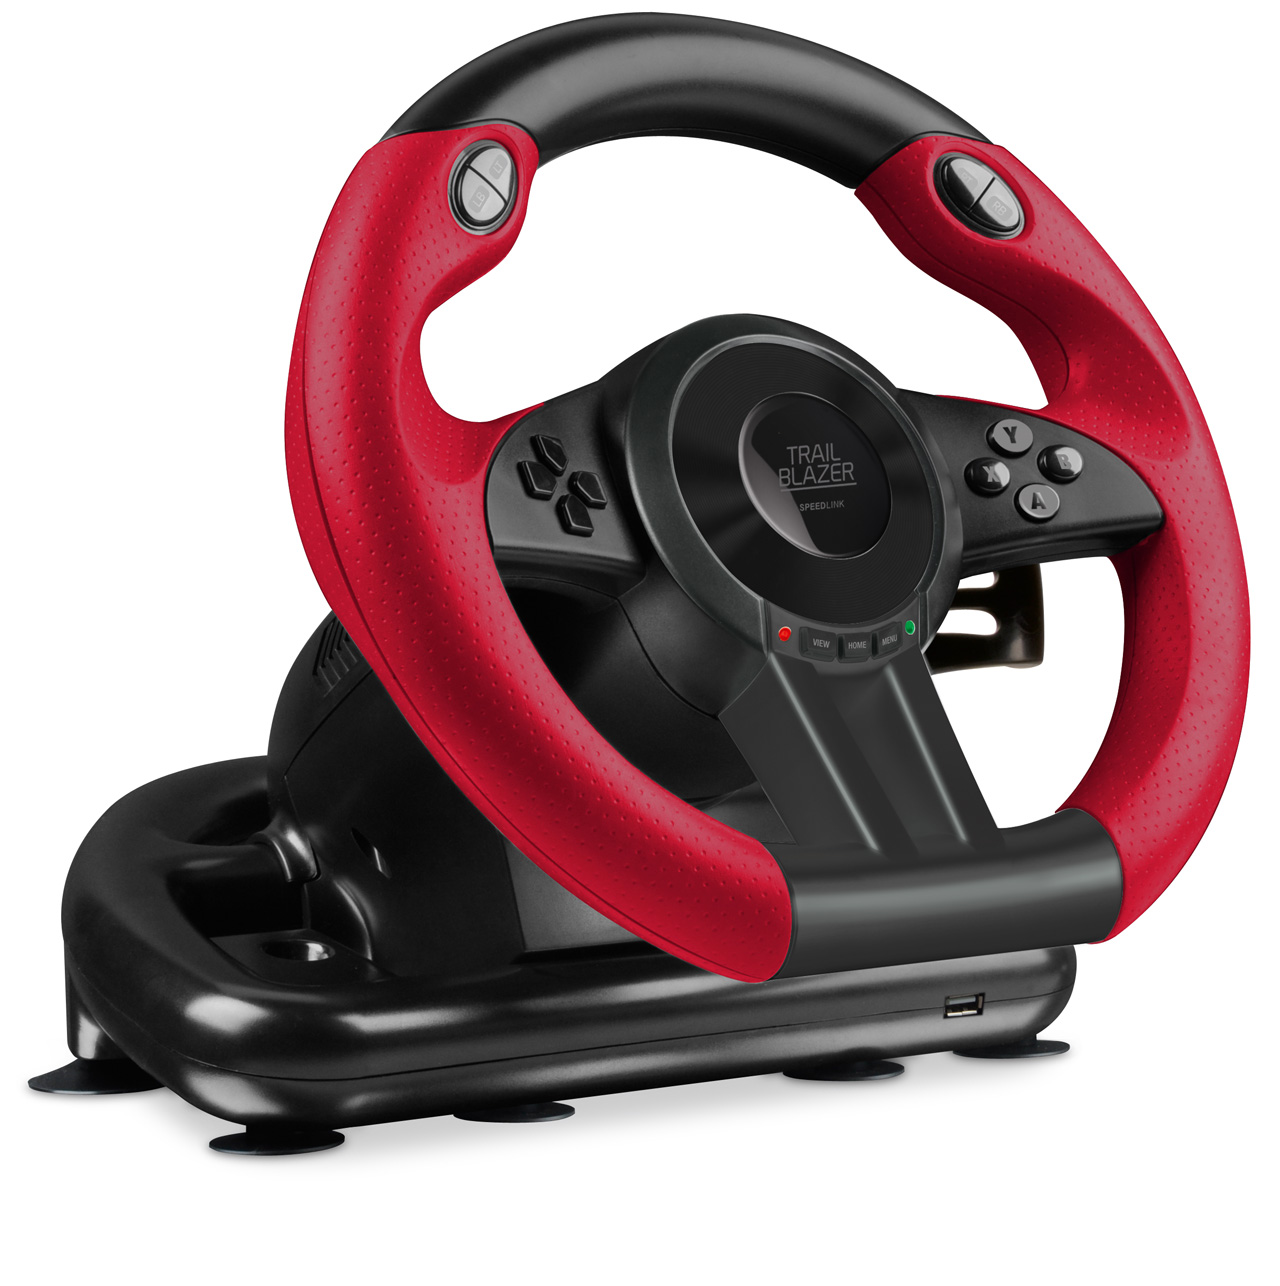 speedlink trailblazer racing wheel review peripherals xsreviews. Black Bedroom Furniture Sets. Home Design Ideas